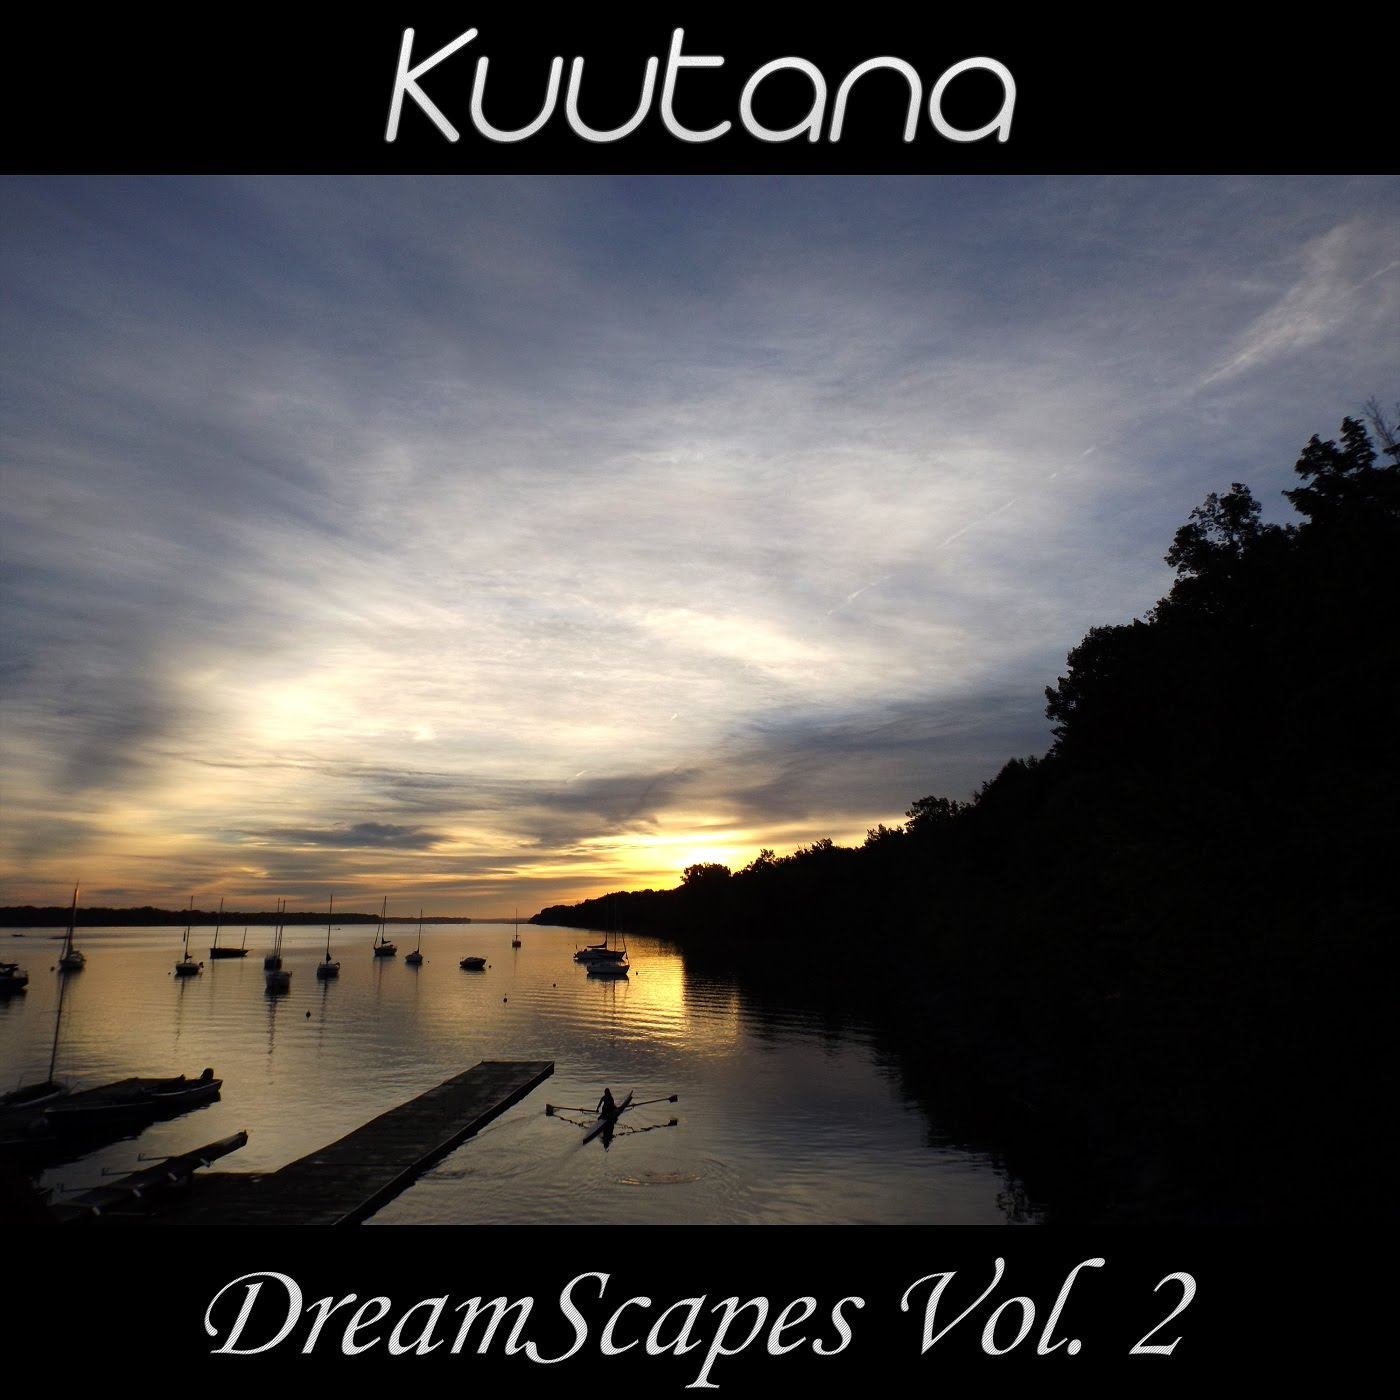 DreamScapes Vol. 2 by Kuutana